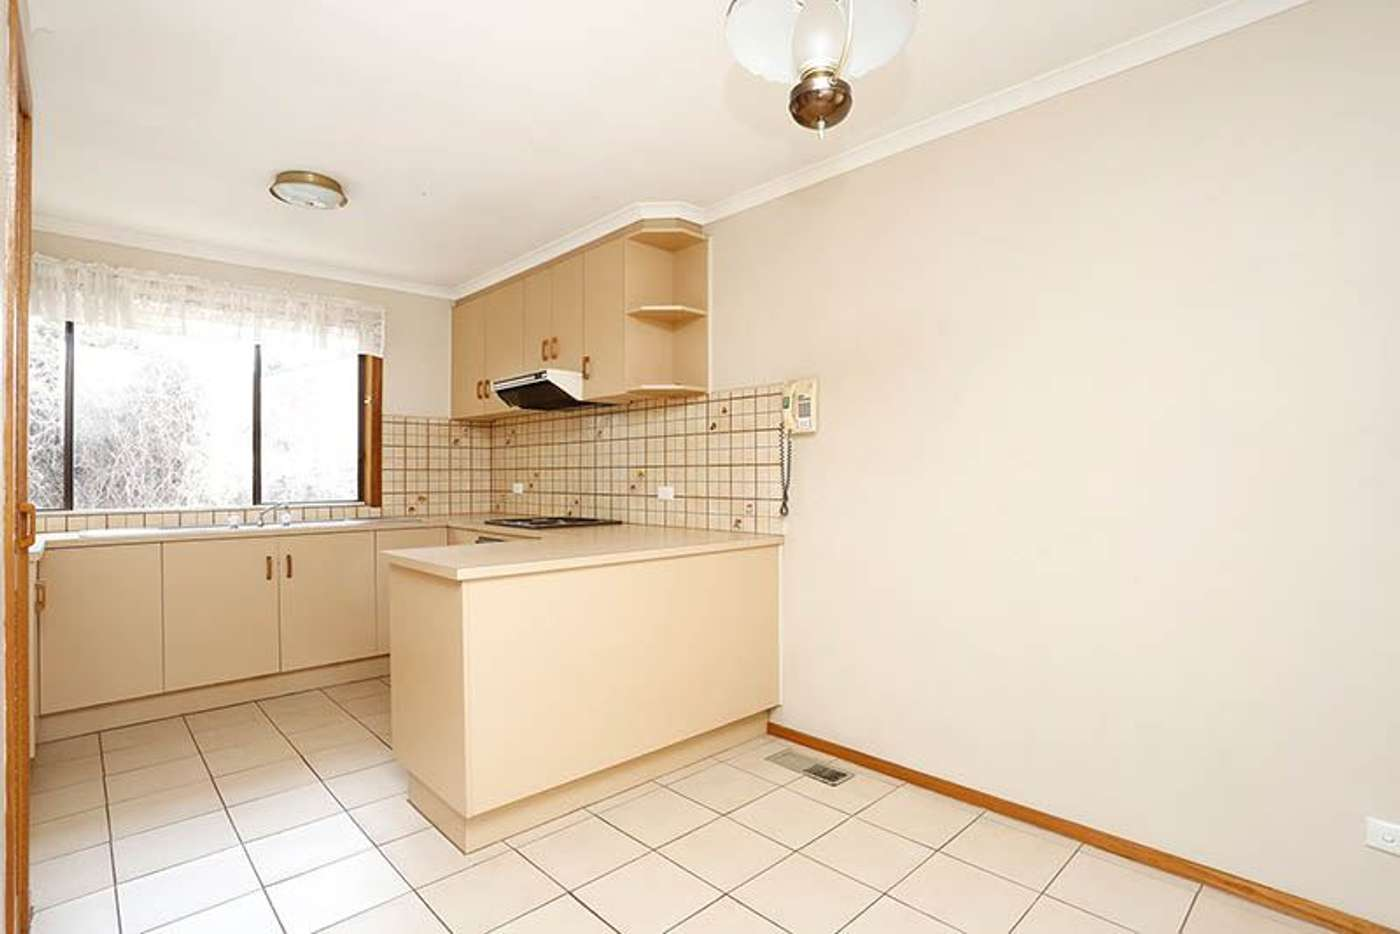 Sixth view of Homely unit listing, 2/15 Doynton Parade, Mount Waverley VIC 3149